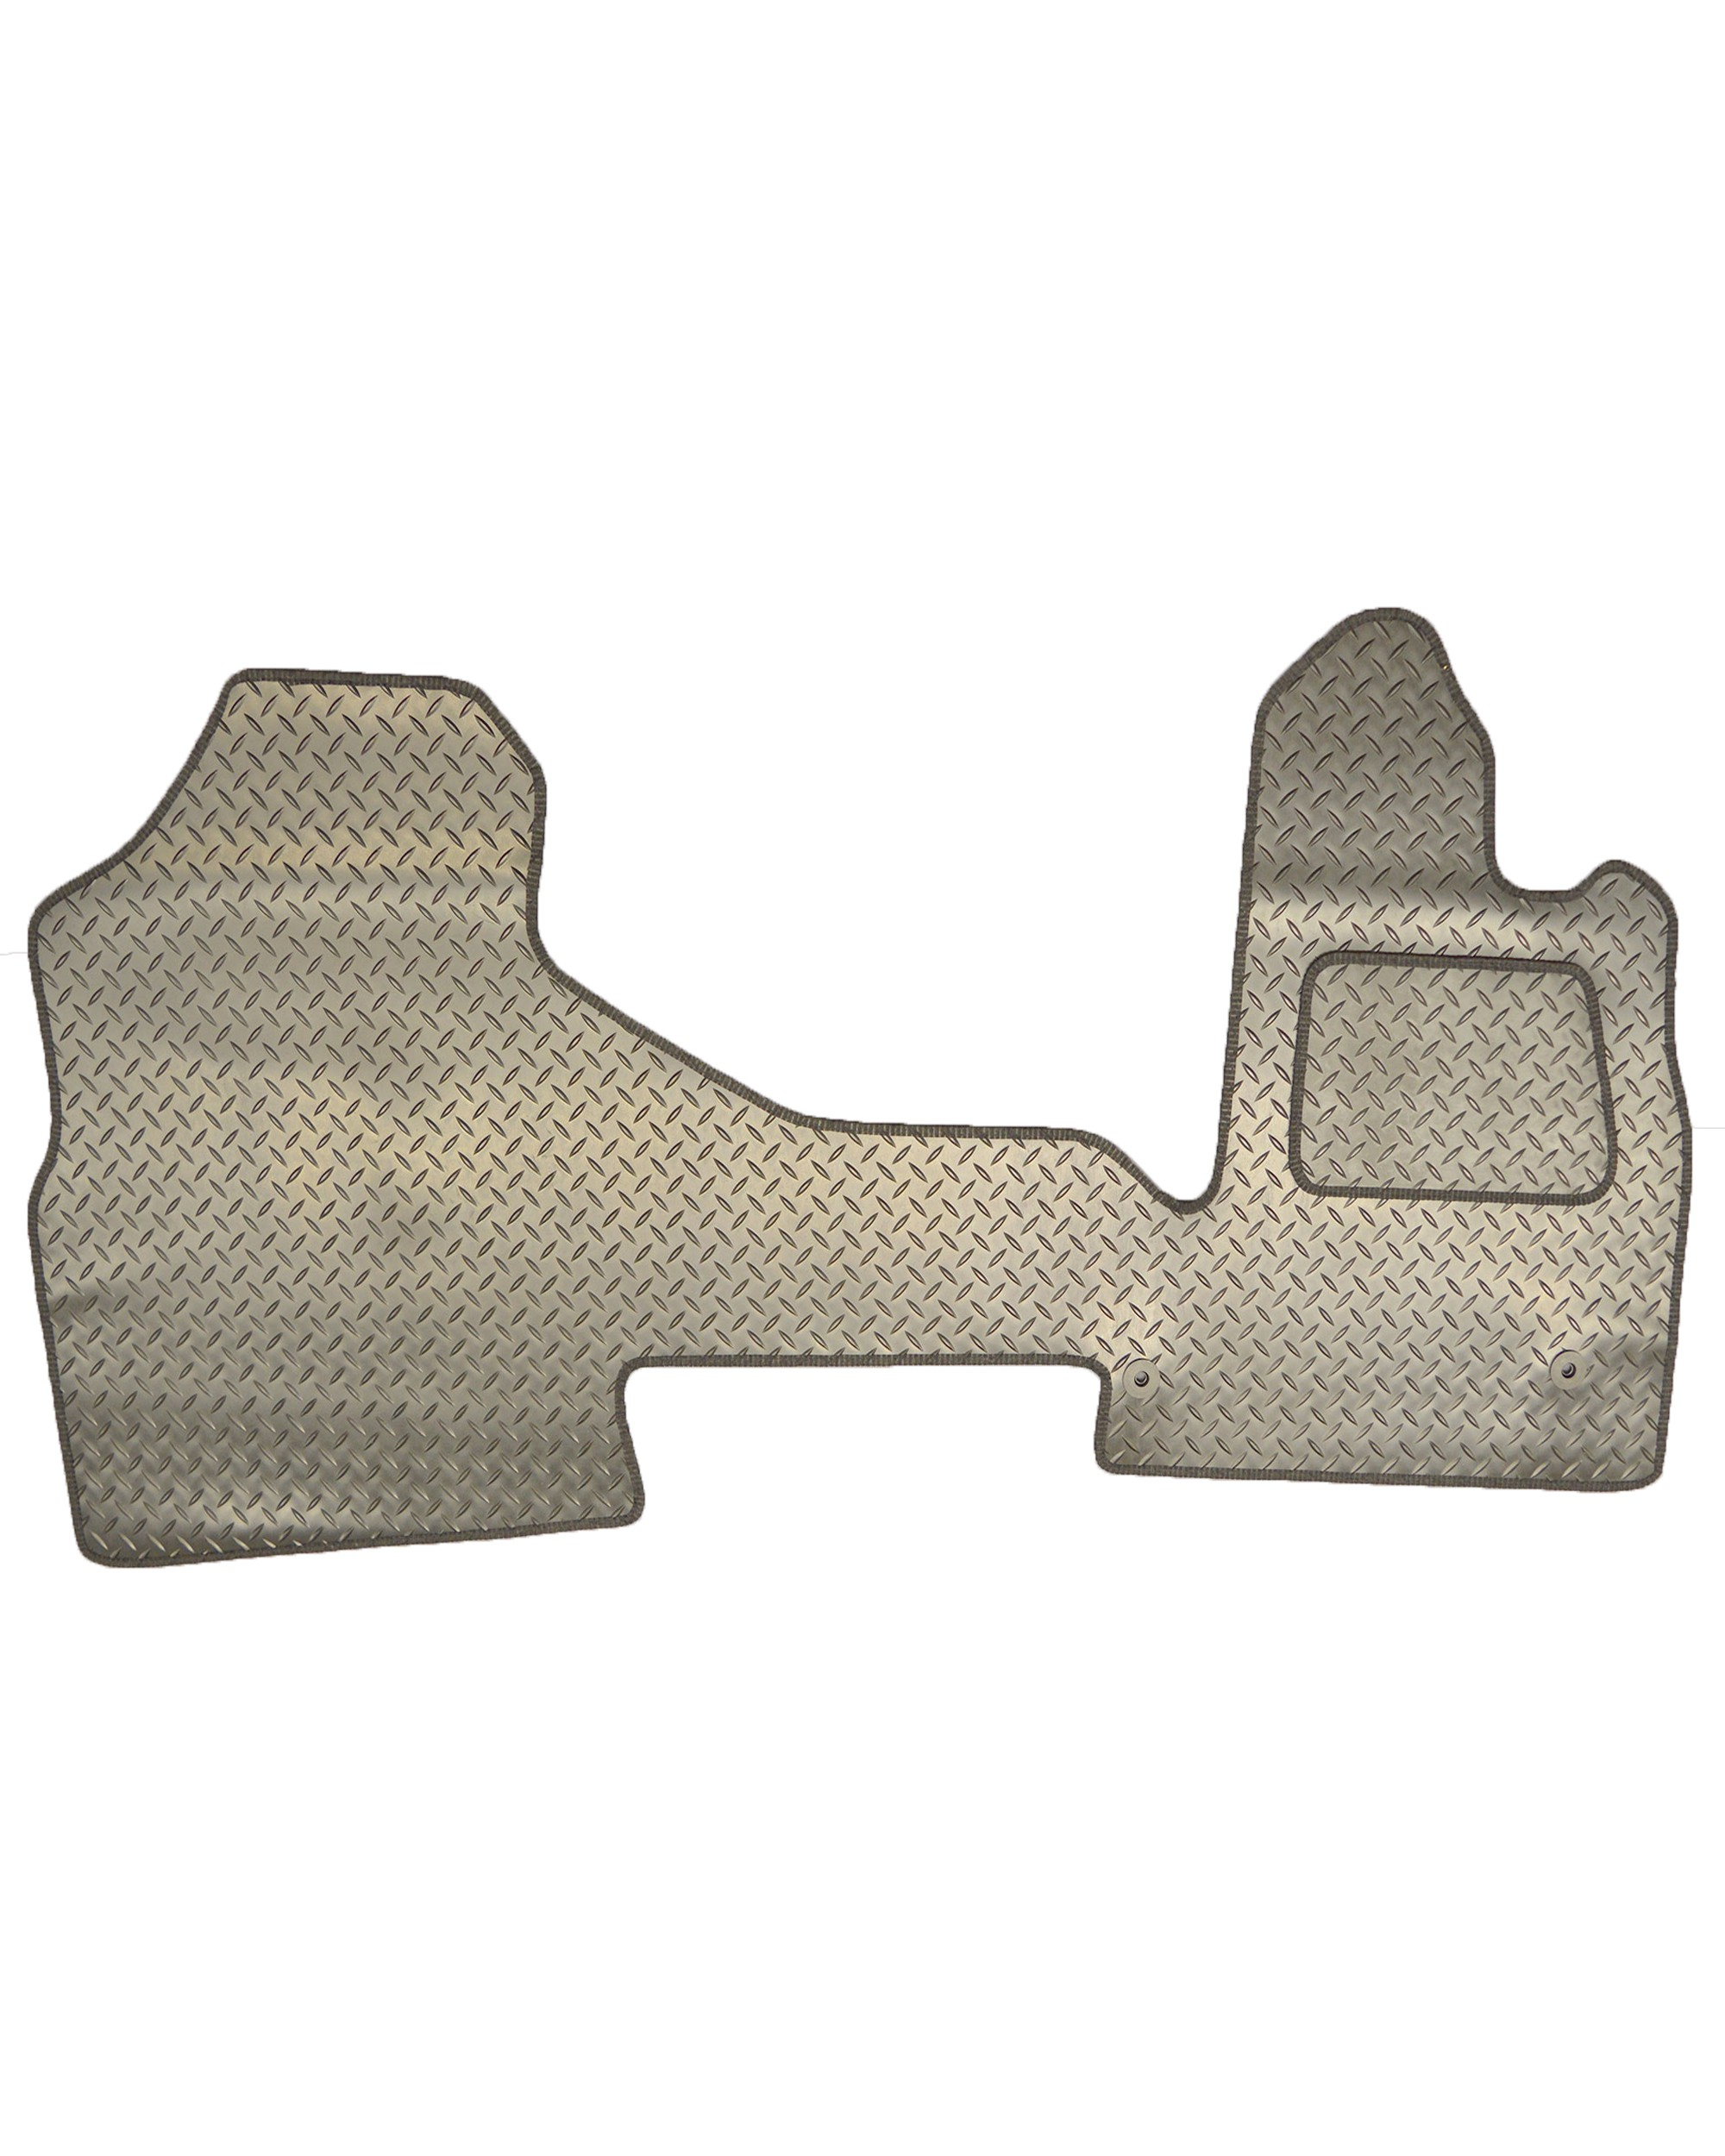 Peugeot Partner 2nd Gen 1 Piece Rubber Floor Mat